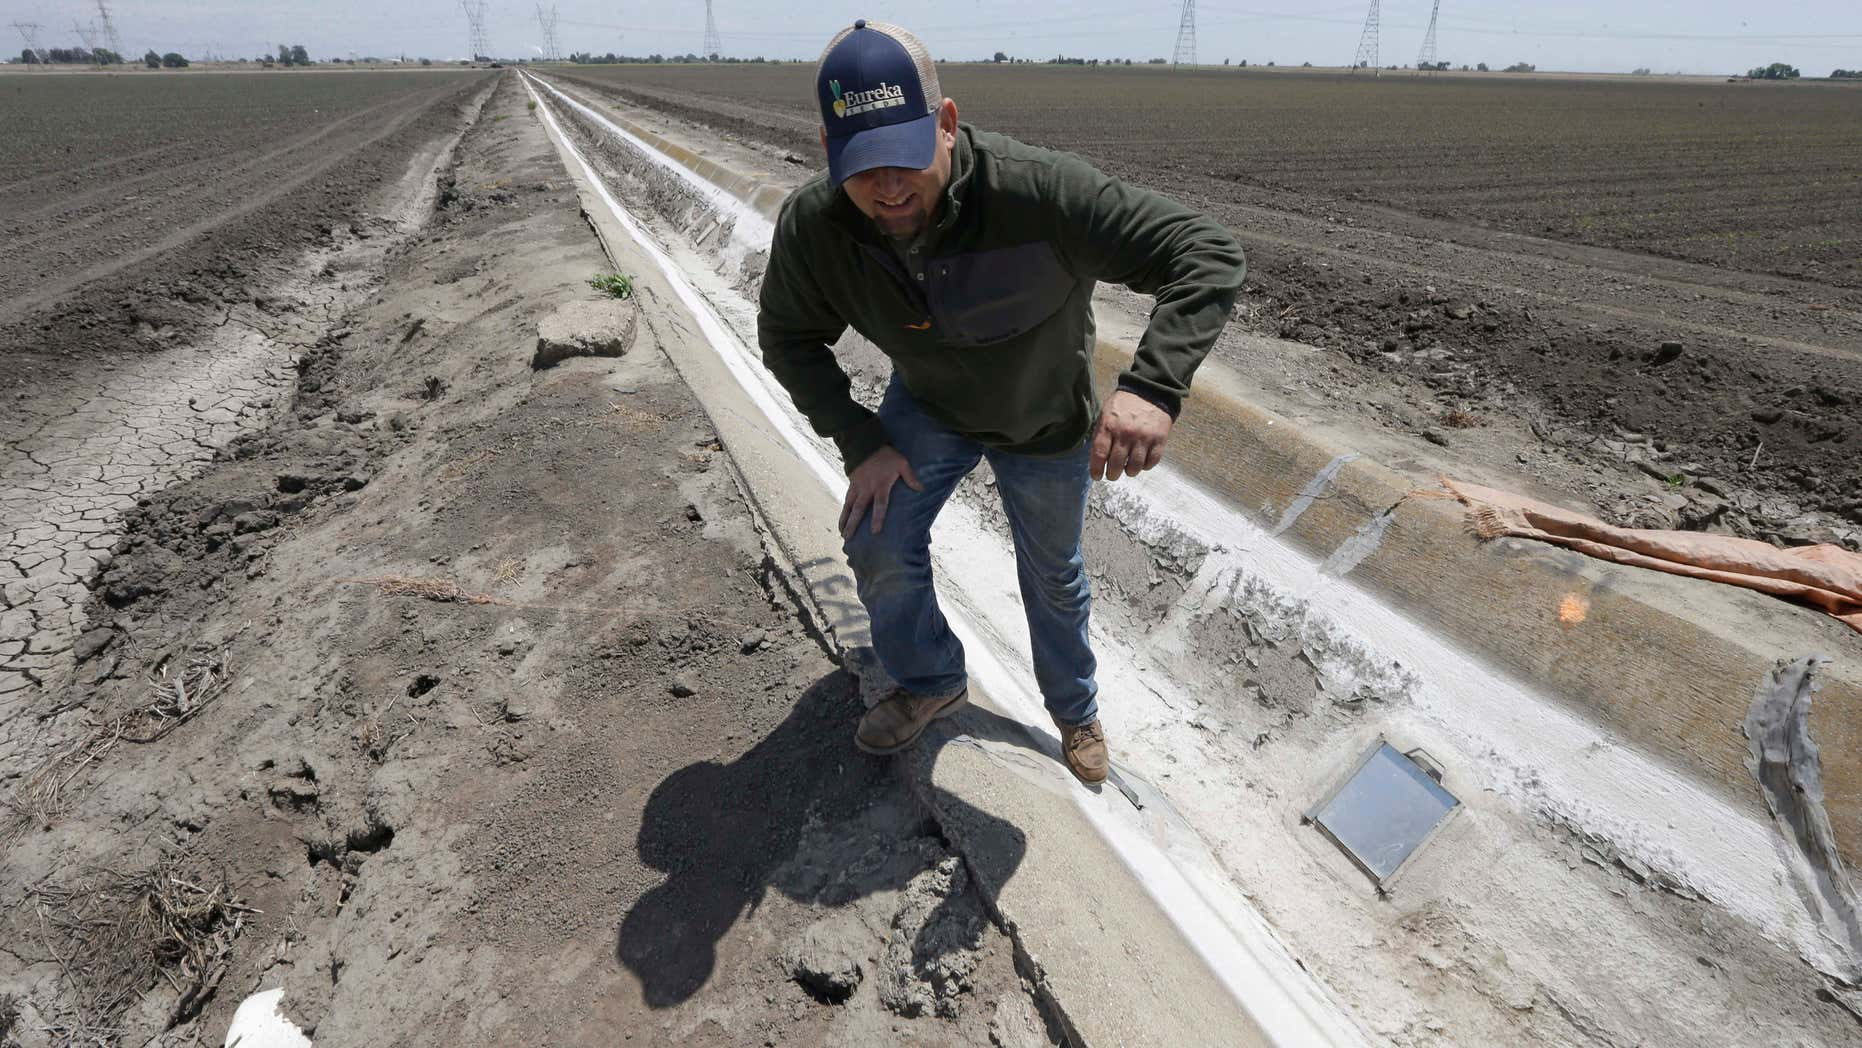 May 18, 2015: Farmer Gino Celli climbs out of a irrigation canal that is covered in dried salt on a field he farms near Stockton, Calif.